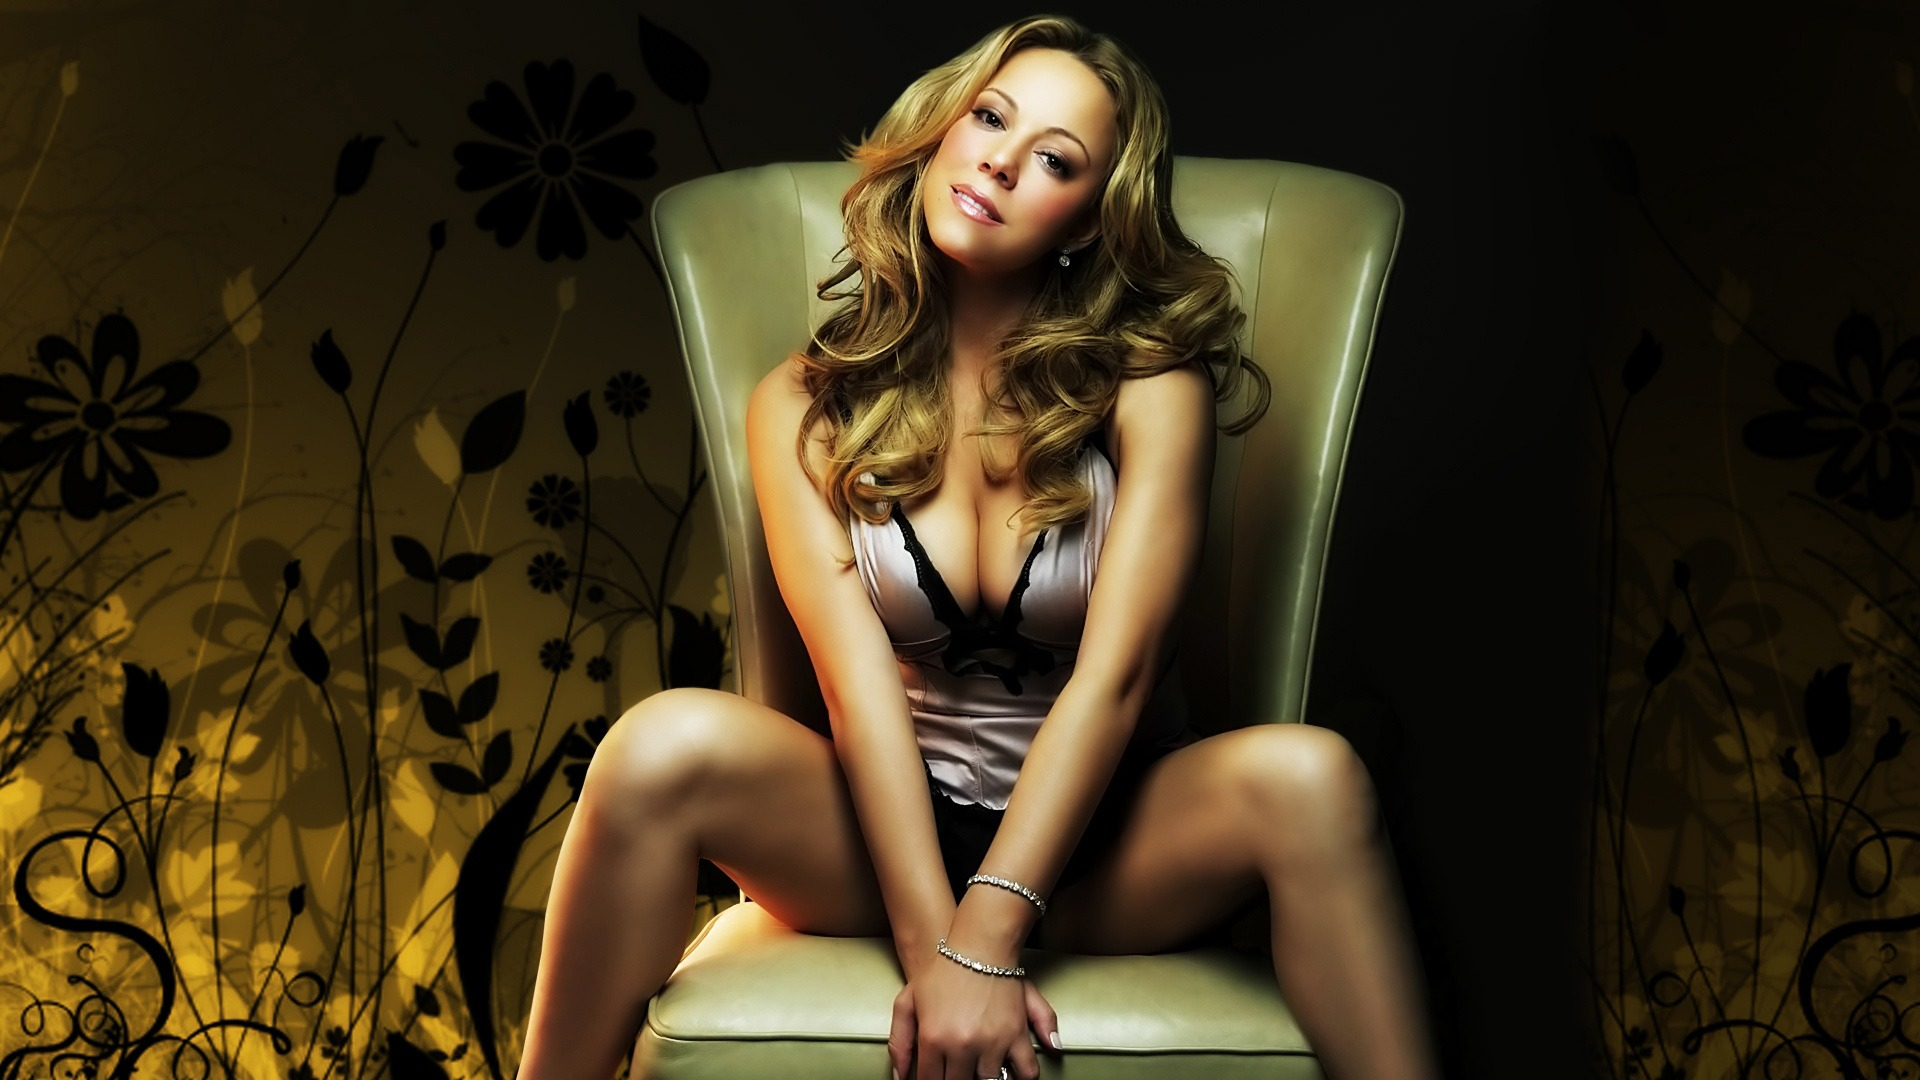 Mariah Carey posing on a chair.